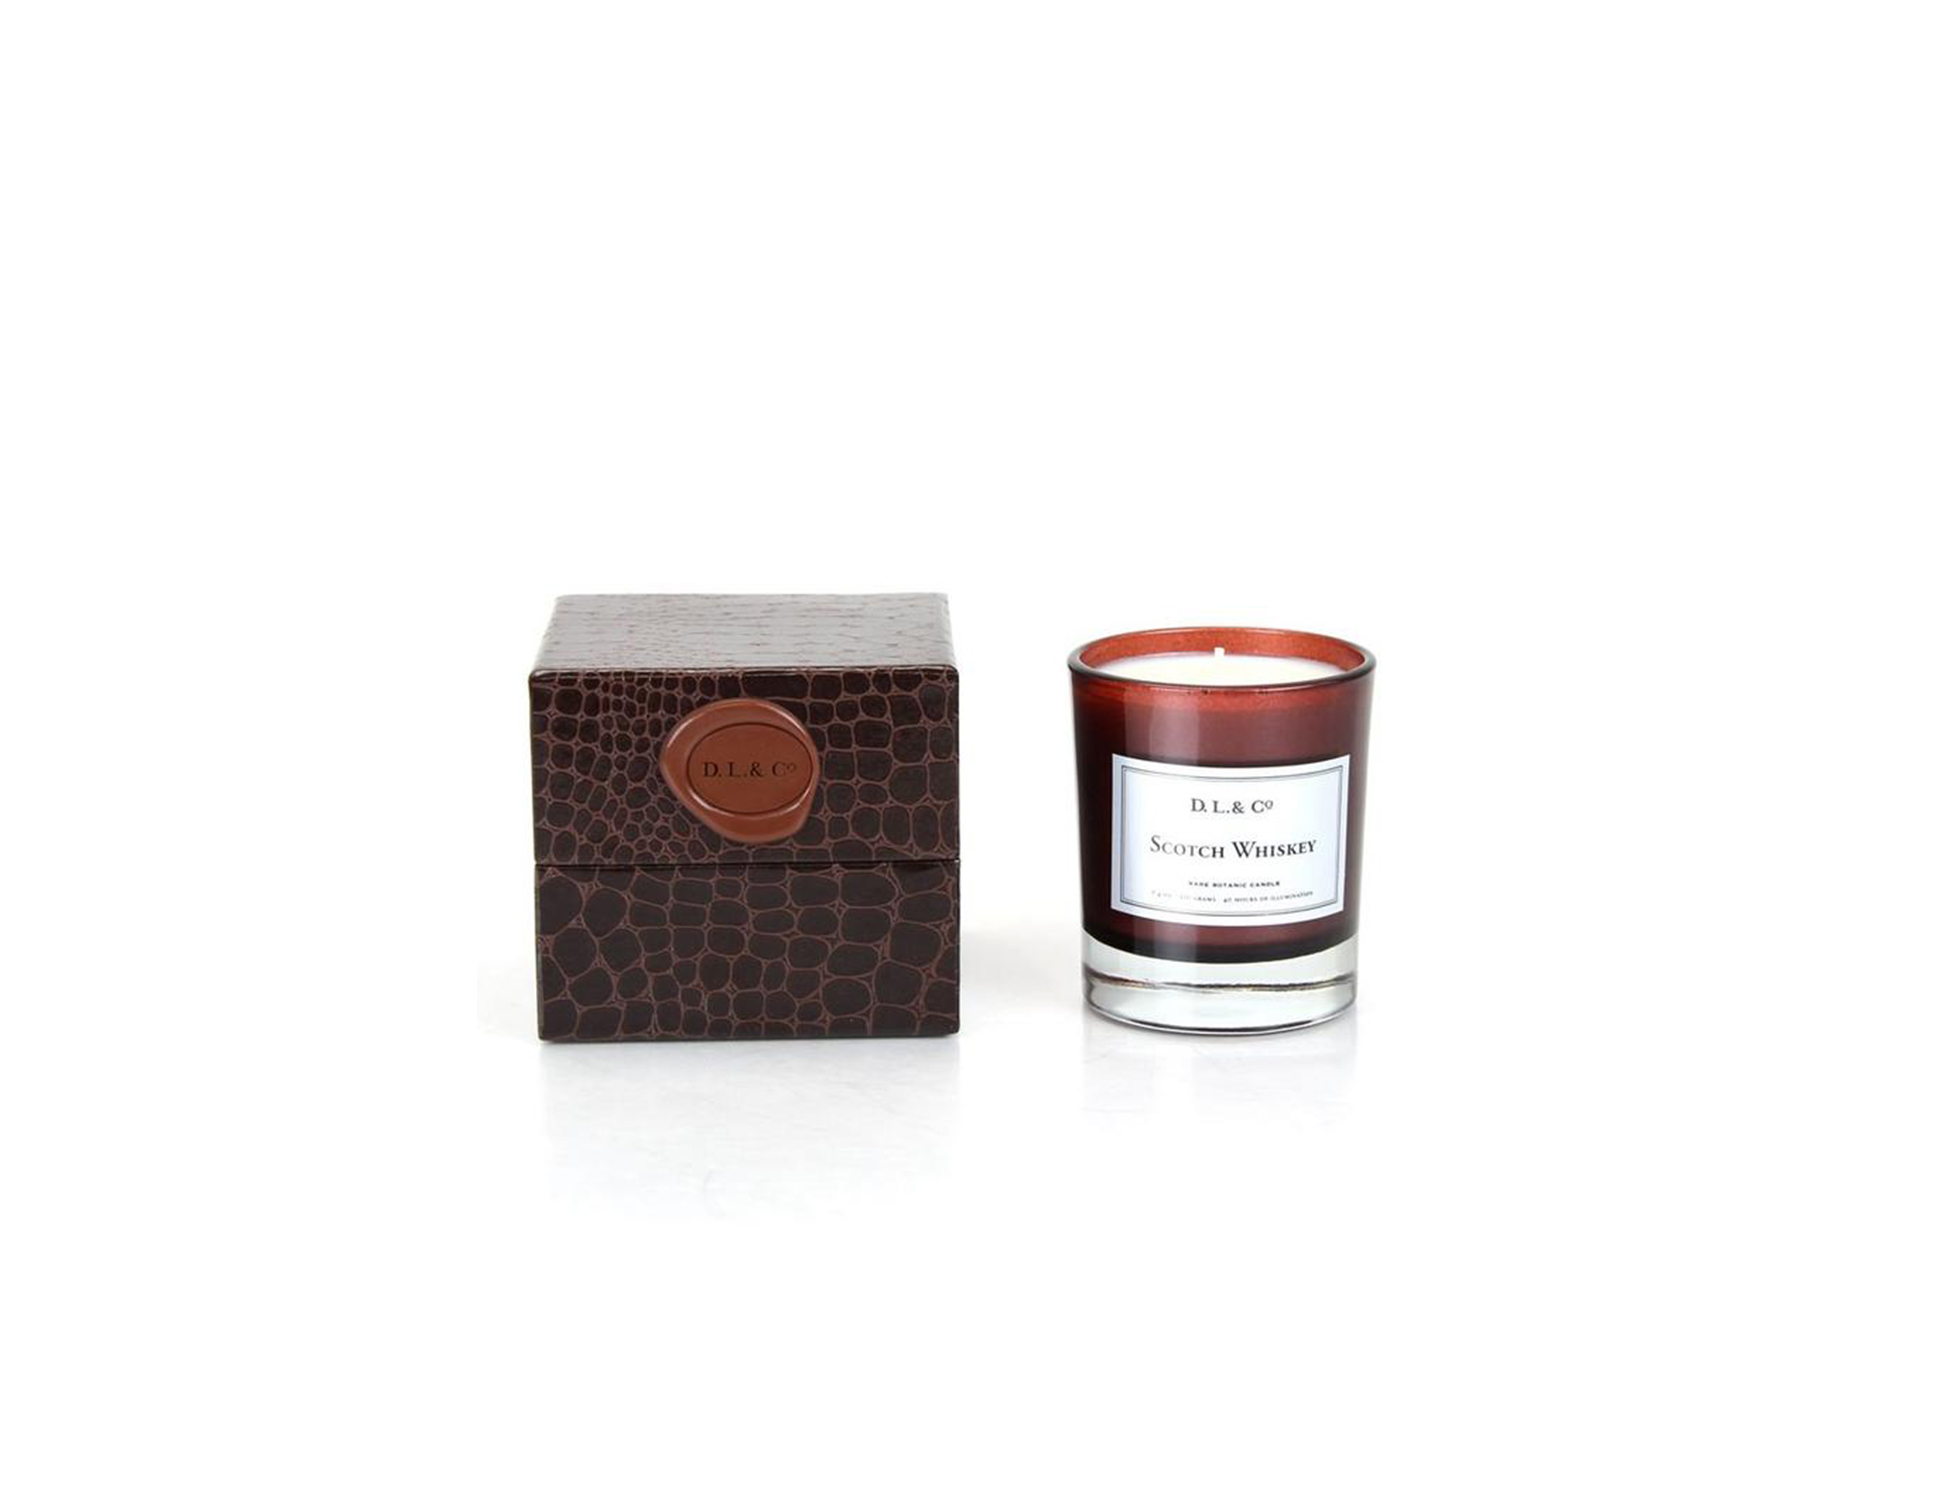 Scotch Whiskey Scented Candle